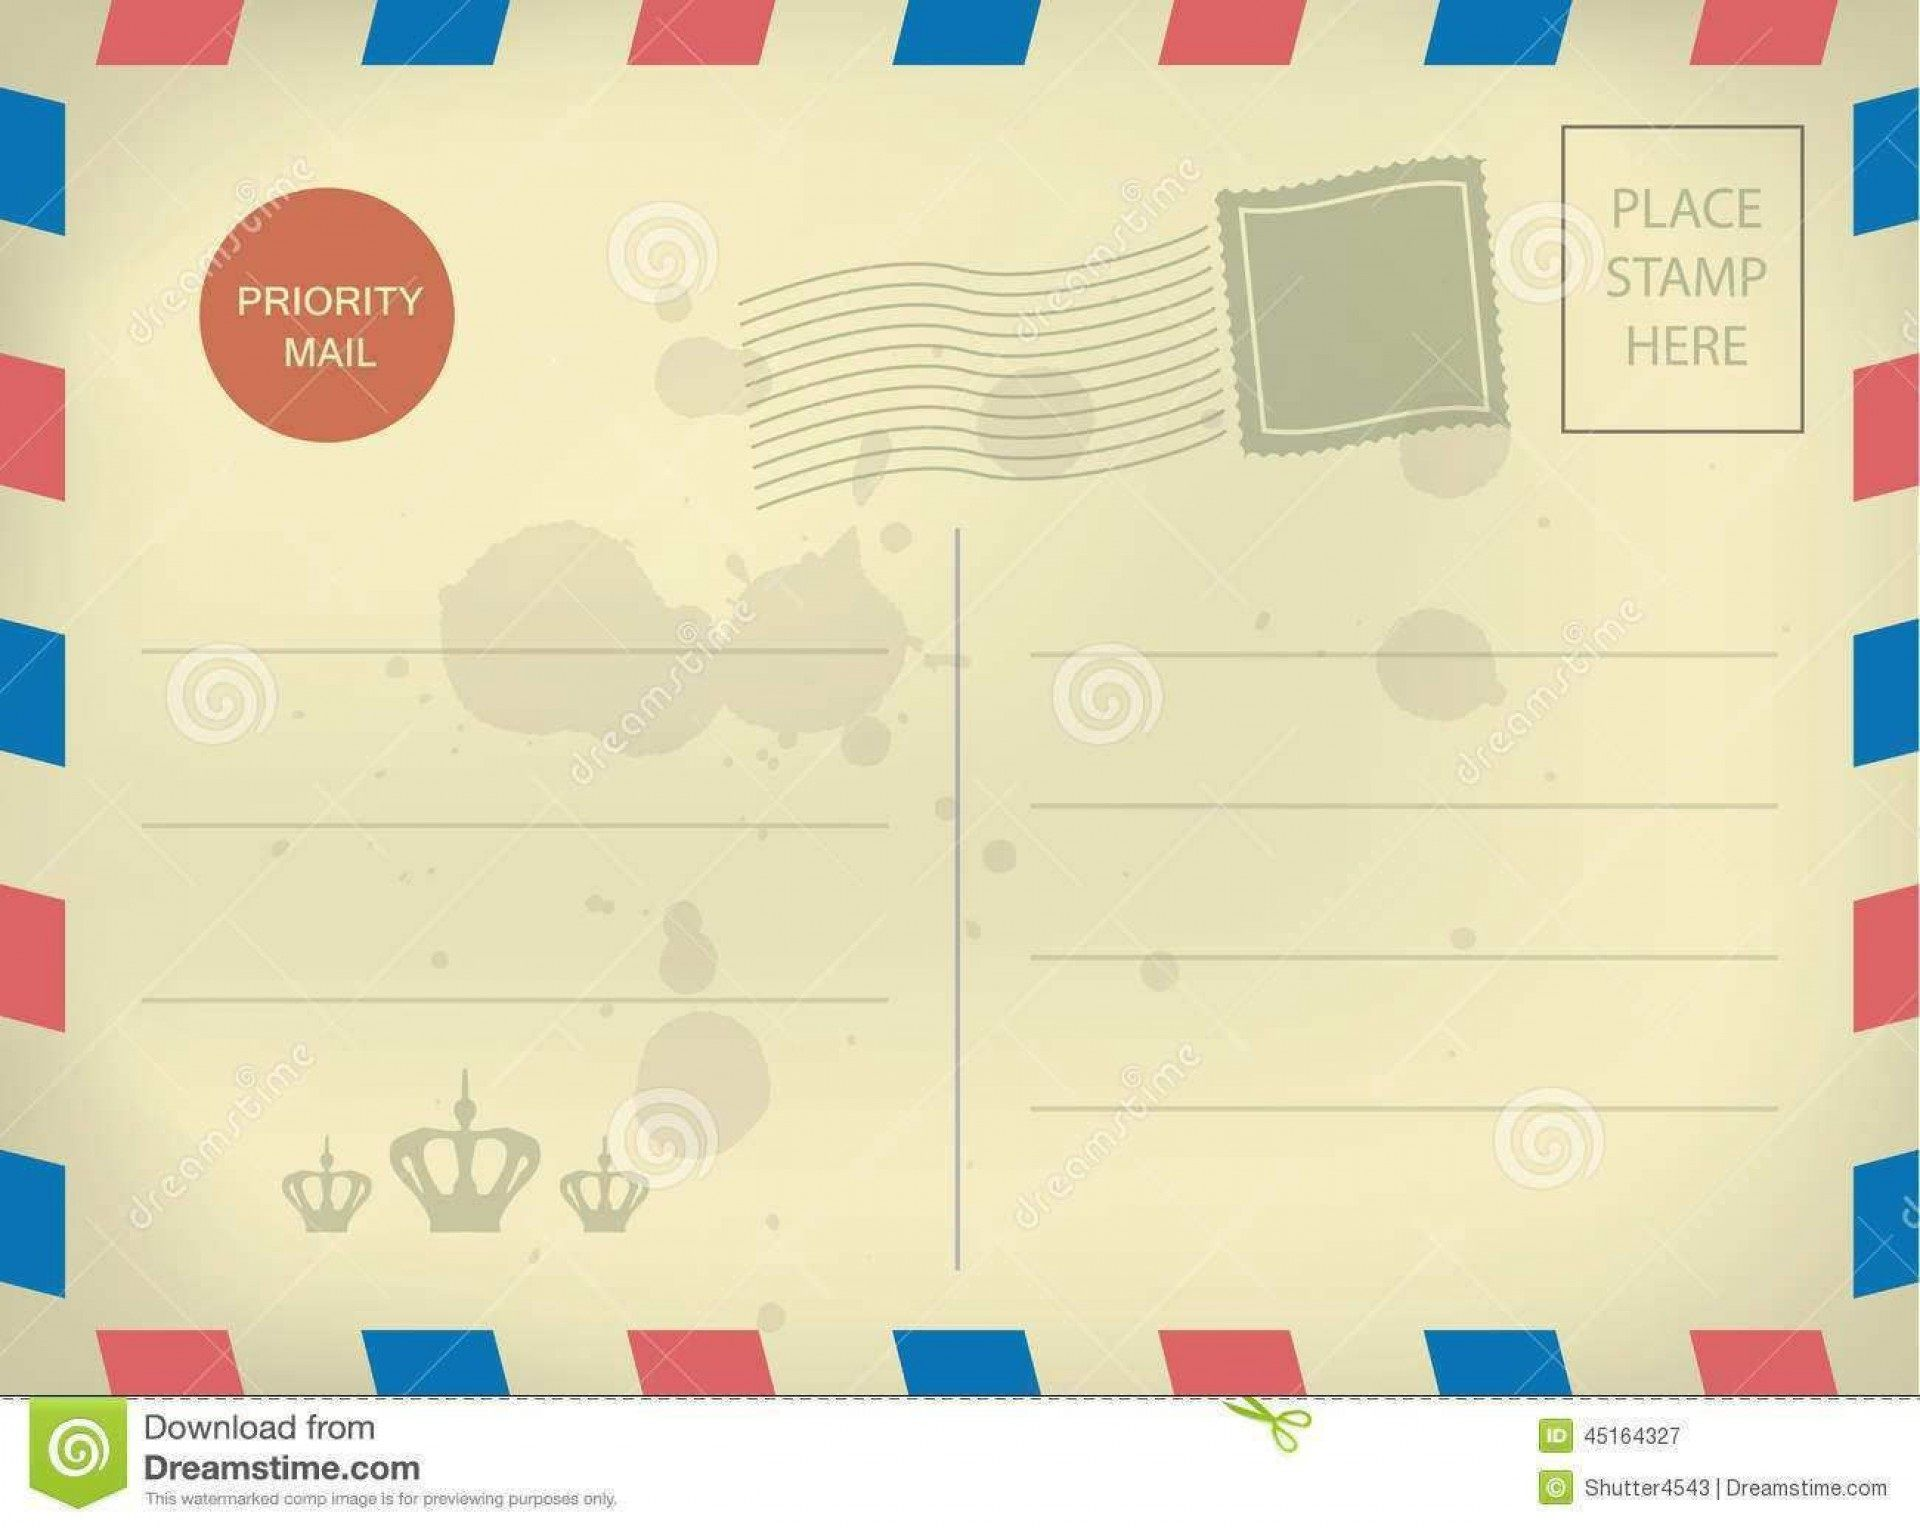 010 Shocking Free Postcard Template Download Microsoft Word Concept Full